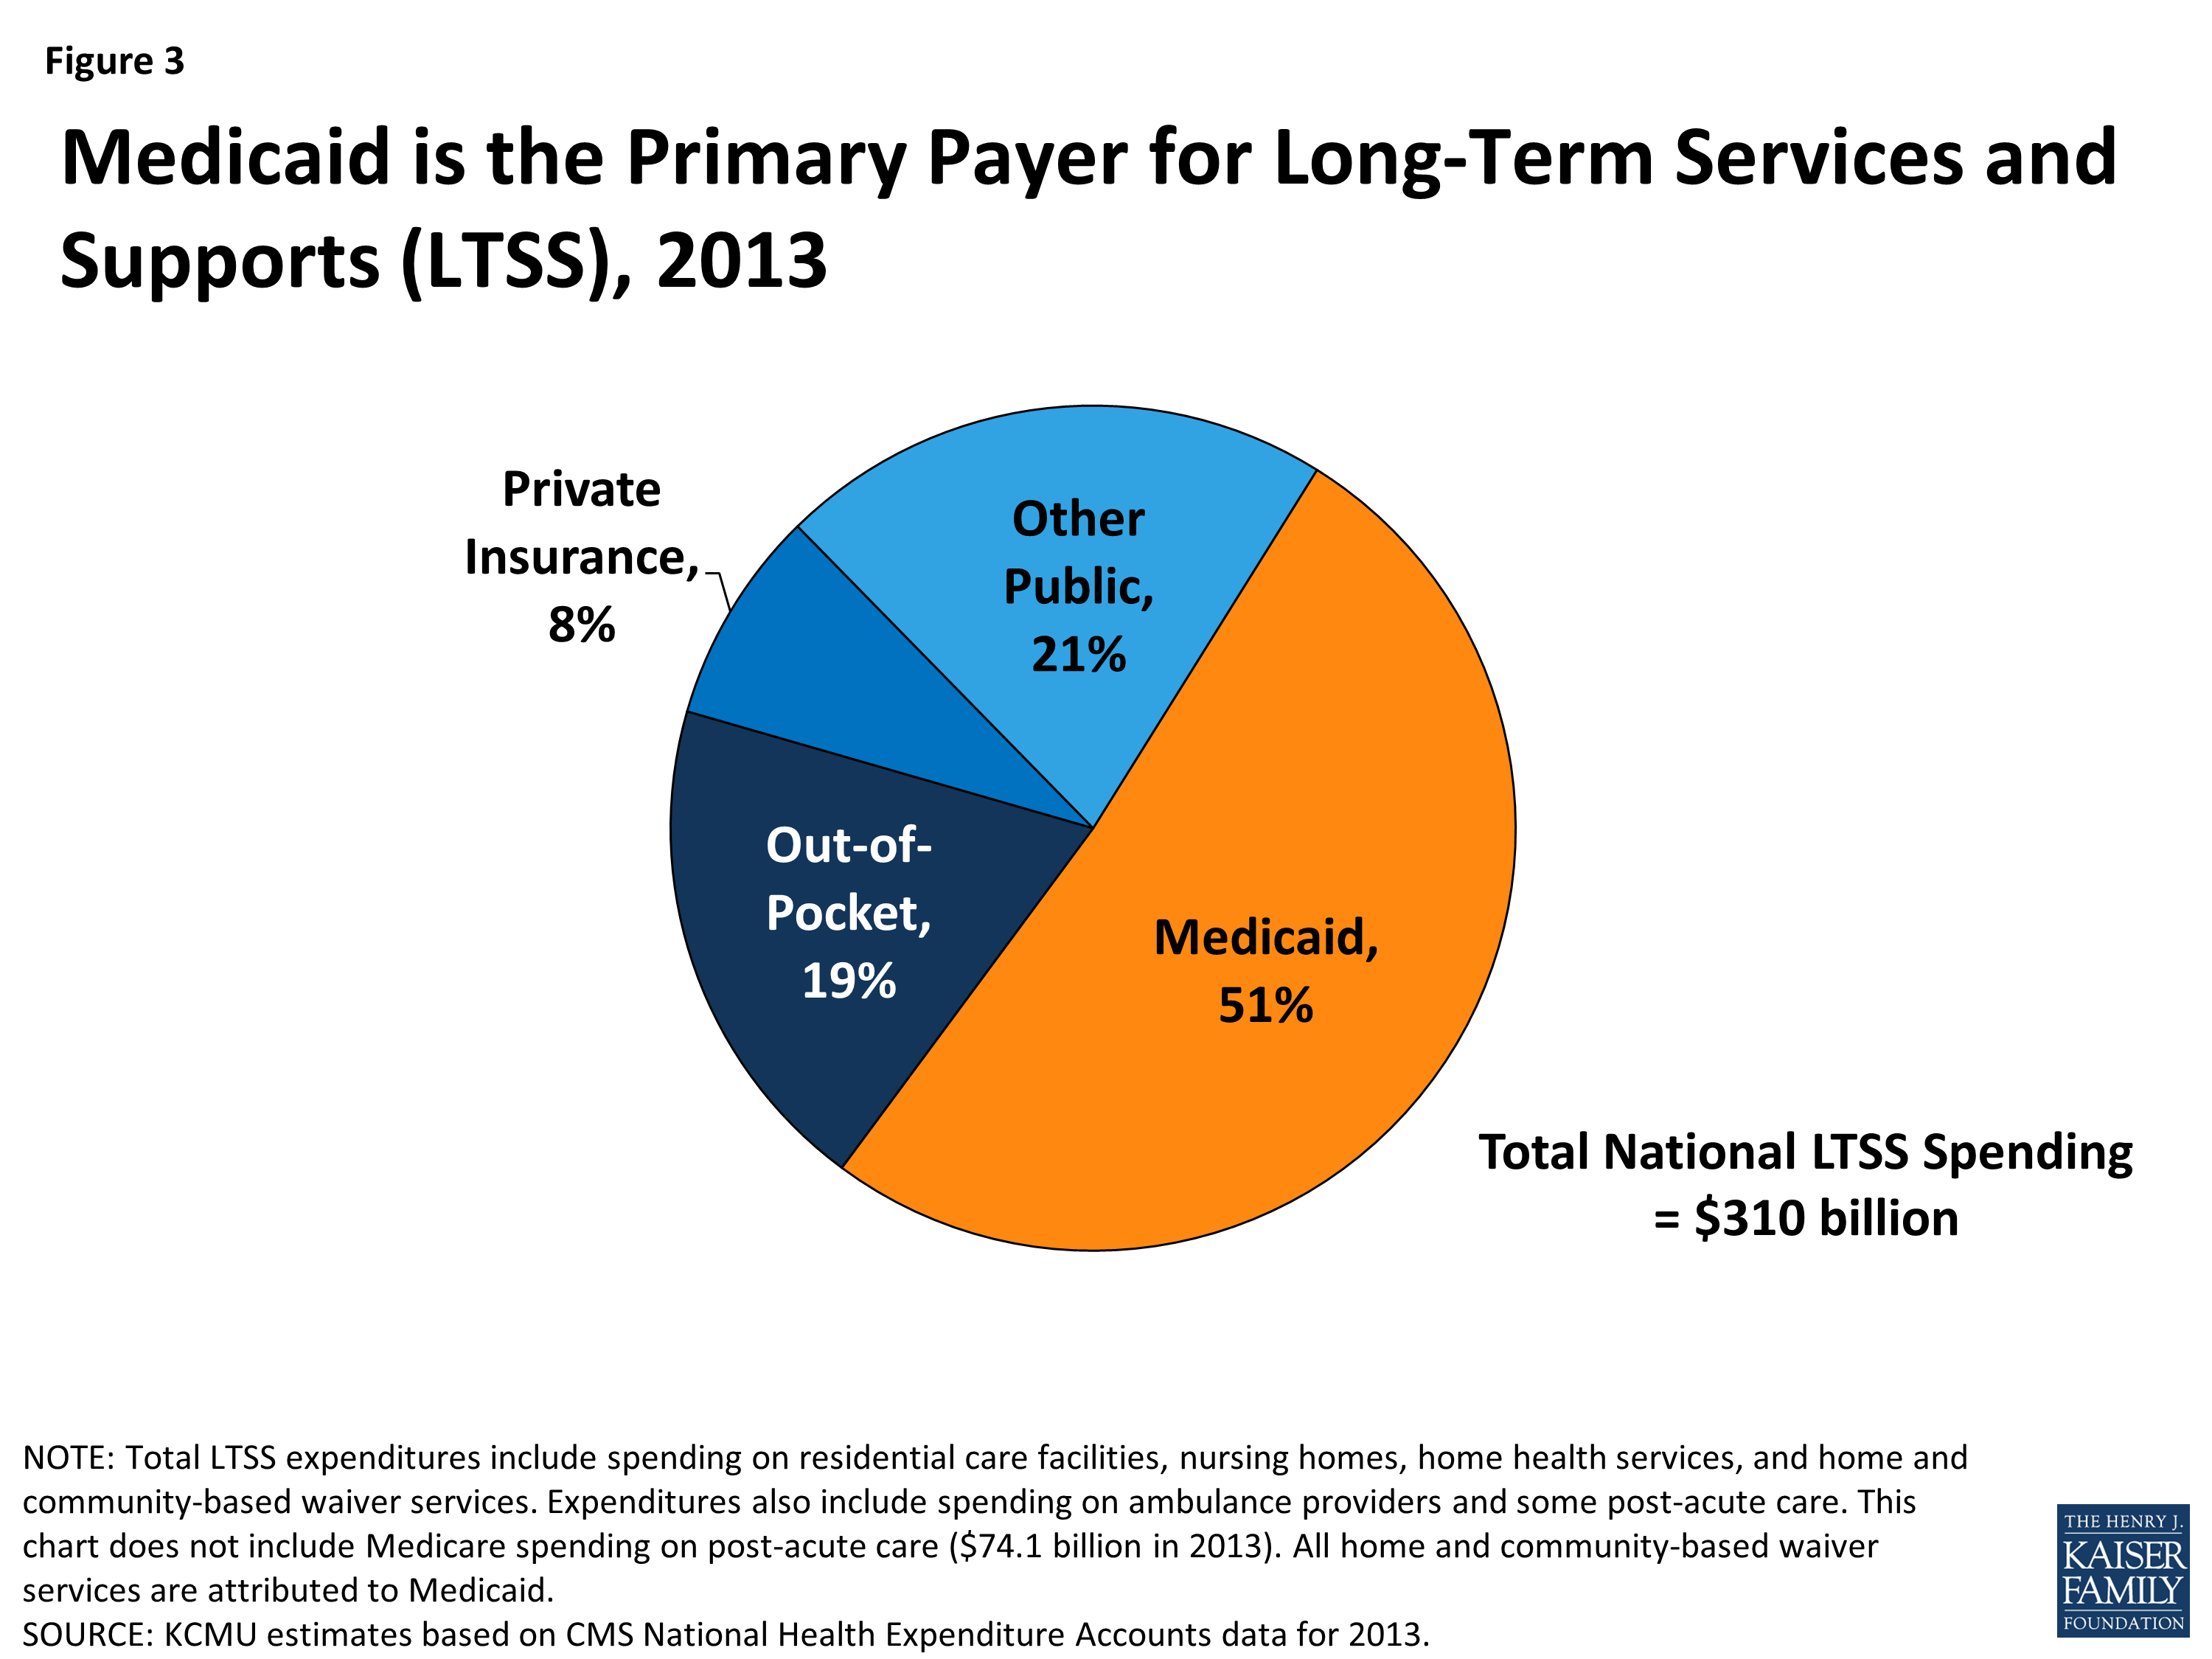 Medicaid and Long-Term Services and Supports: A Primer | The